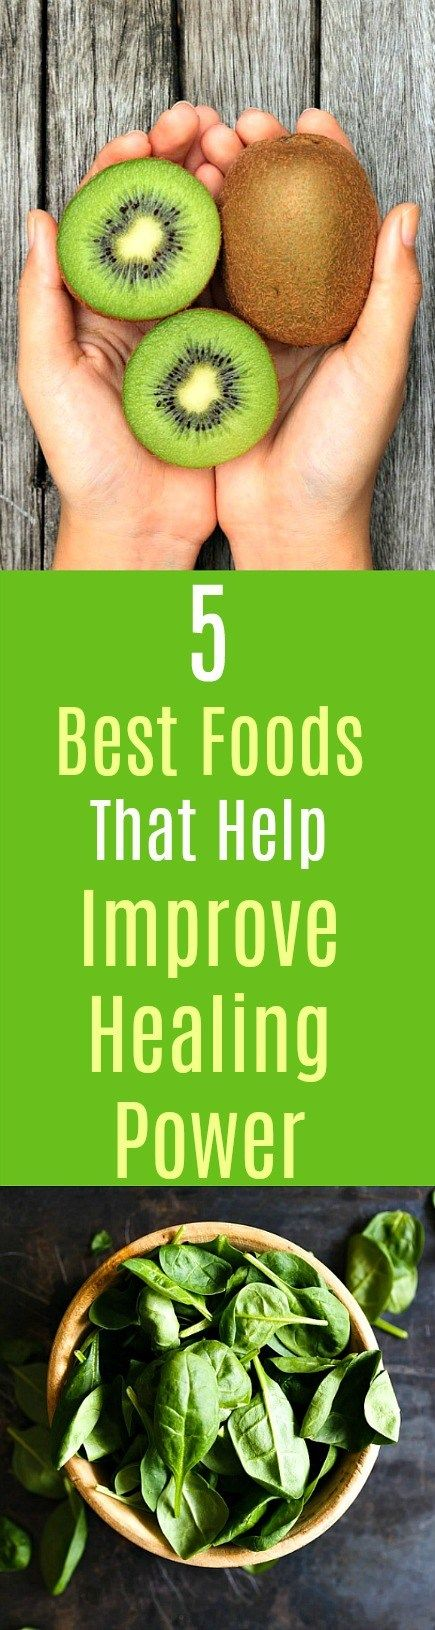 5 Best Foods That Help Improve Healing Power: Here are five of the best foods that contribute healthy nutrients and enhance healing powers. These five whole foods possess multiple numerous healing benefits from reducing cholesterol to fighting cancer, safeguarding against heart diseases to restoring damaged cells. Consume these super-healing foods and begin to feel healthier. #healingfoods #healthyfoods #kiwi #spinach #guava #cherries #beans